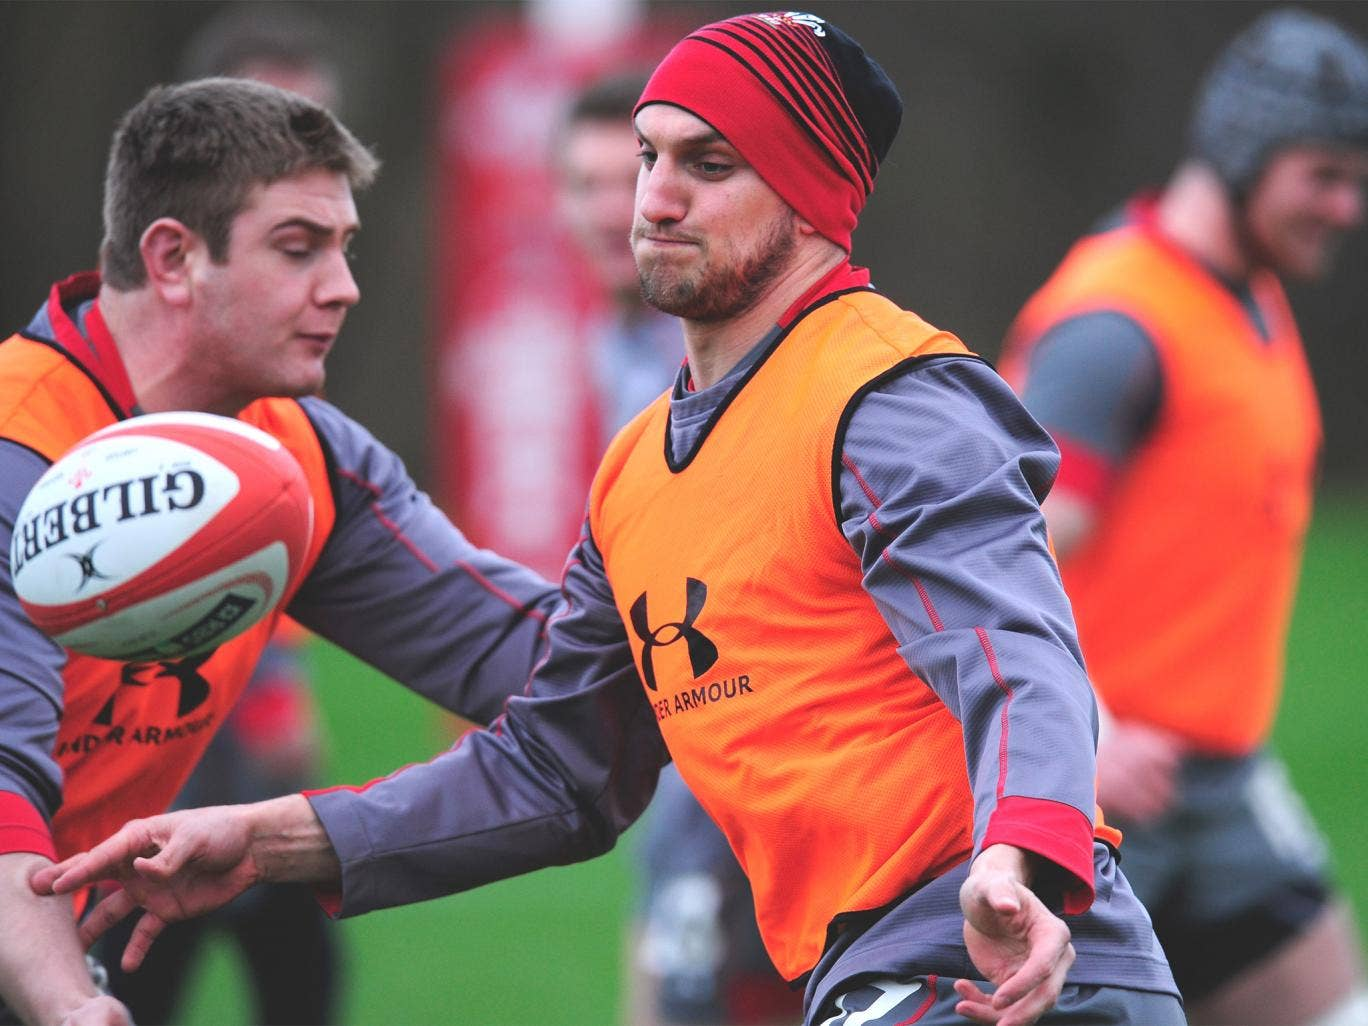 Sam Warburton in action with team mates during a Wales training session